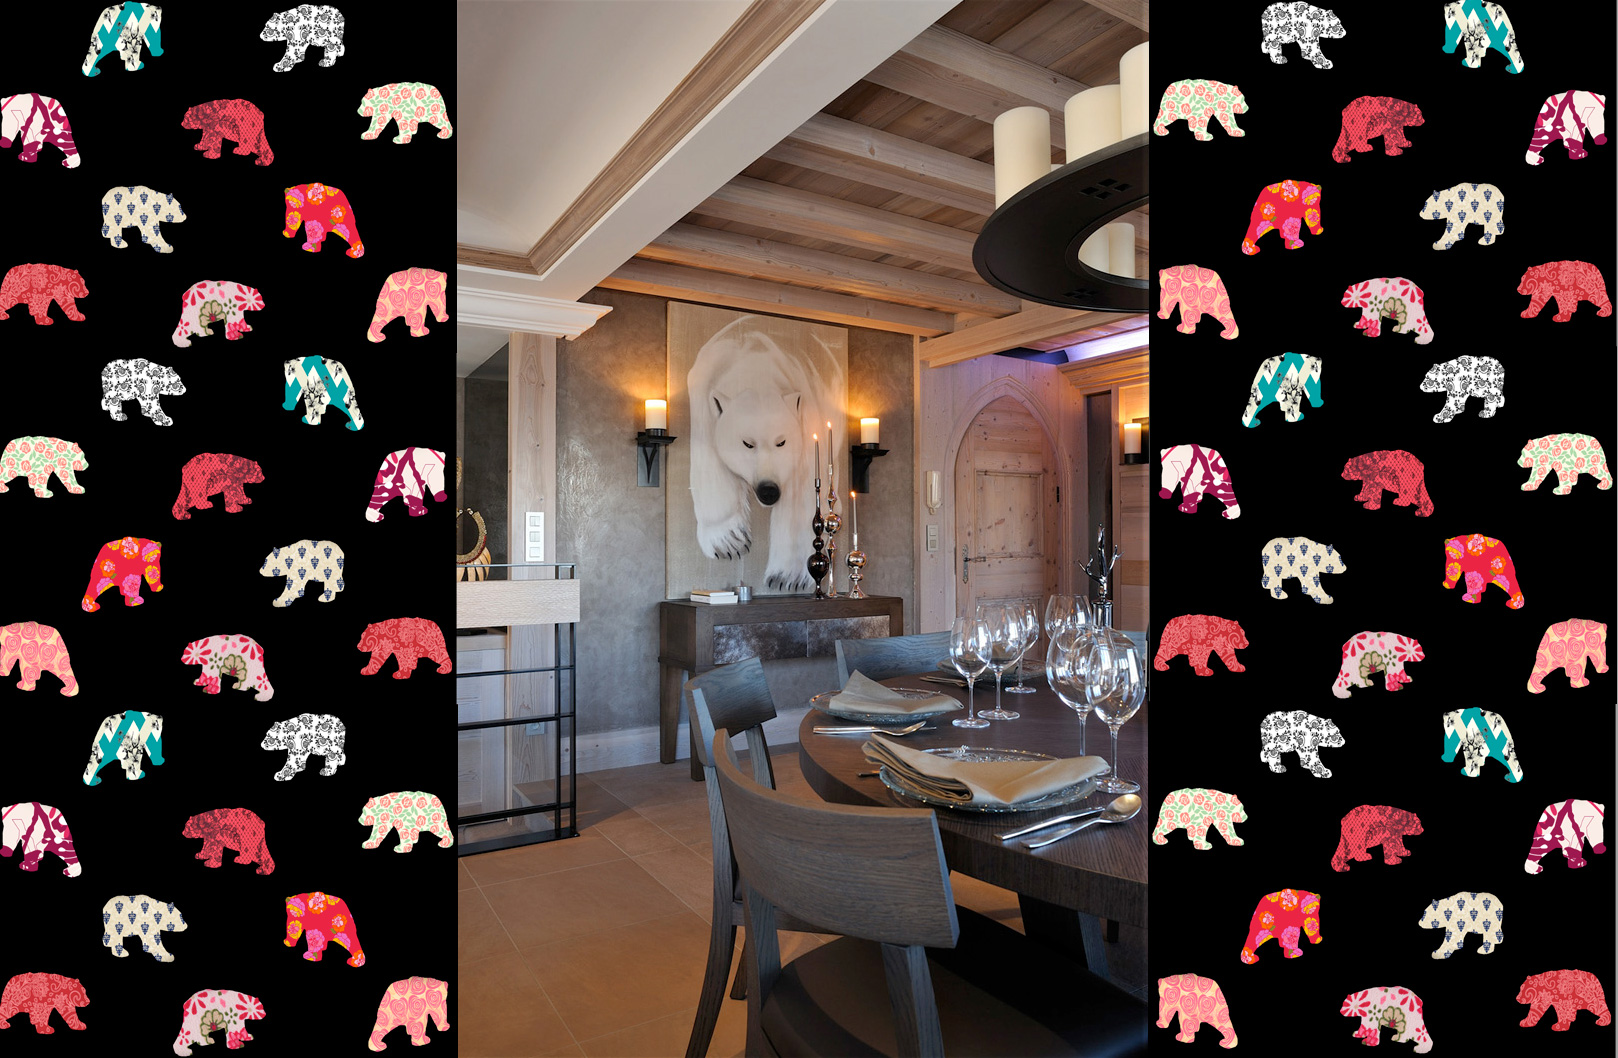 WPB-COURCHEVEL-PATTERNS polar-bear-white-deco-decoration-large-size-printed-canvas-luxury-high-quality Thierry Bisch painter animals painting art decoration hotel design interior luxury nature biodiversity conservation